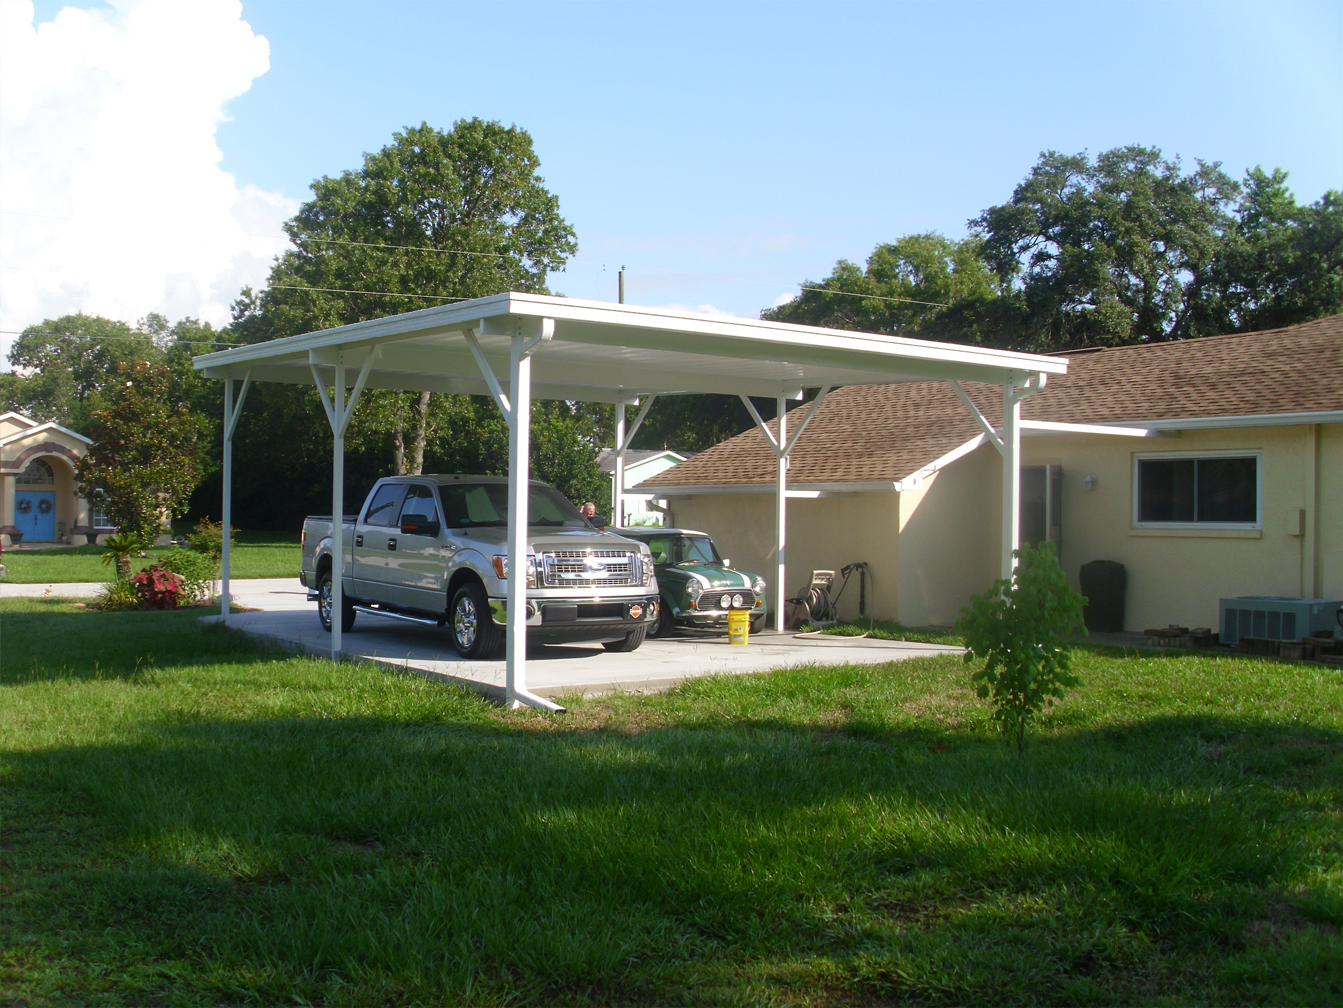 Gallery Of Houses With Carports : Carport aluminum covers